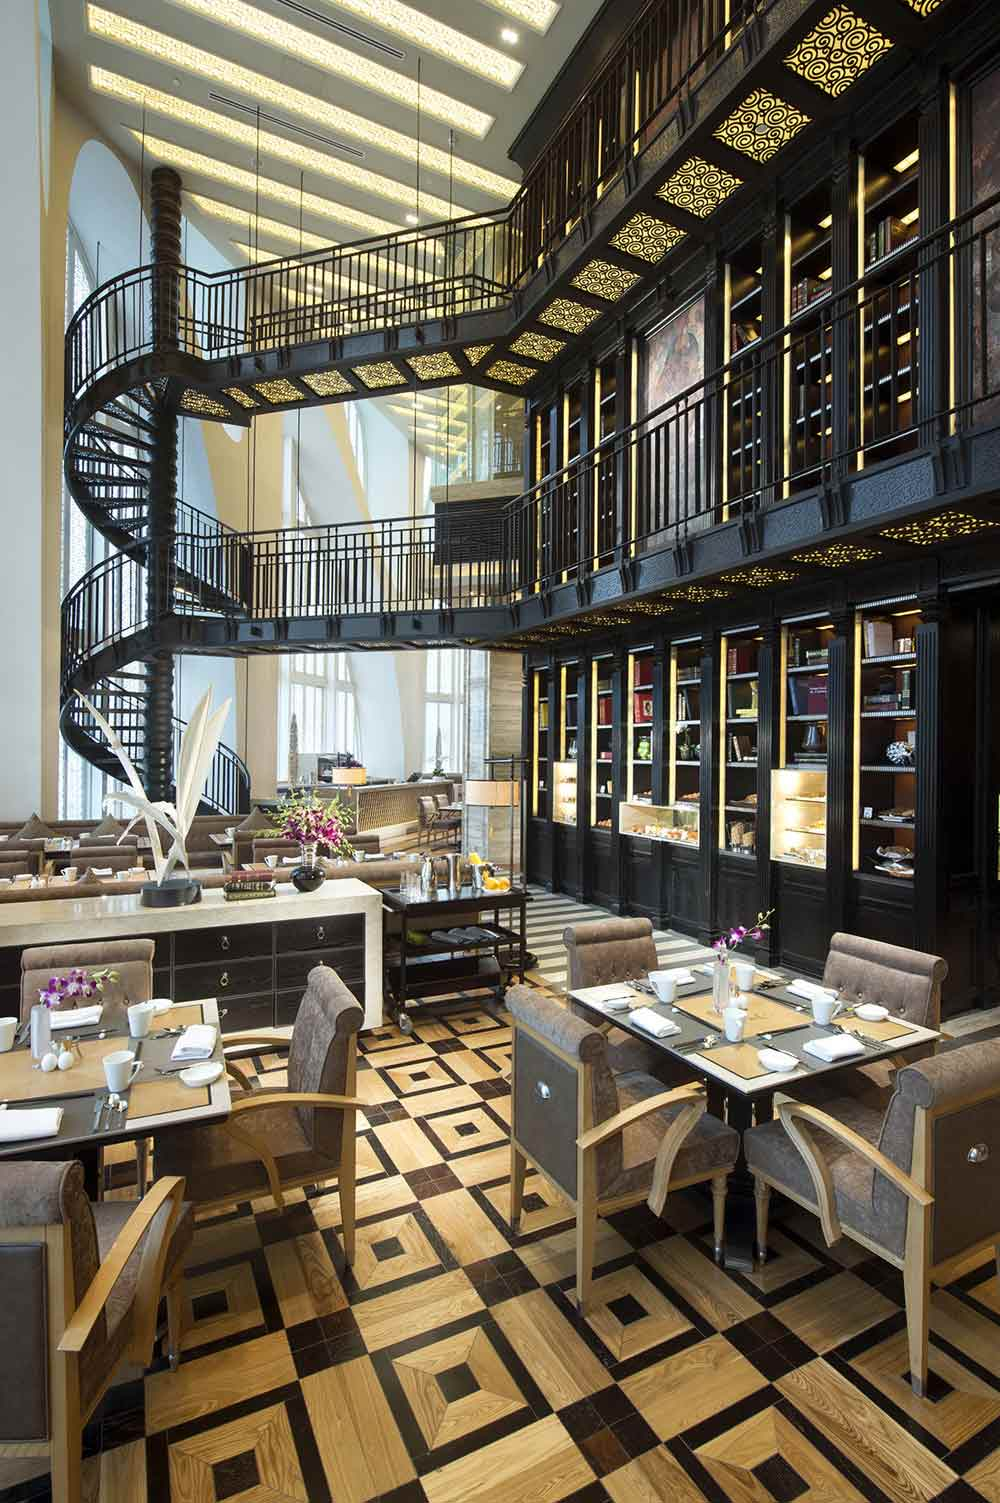 Food Library Chapter Restaurant choice at Conrad Beijing, China